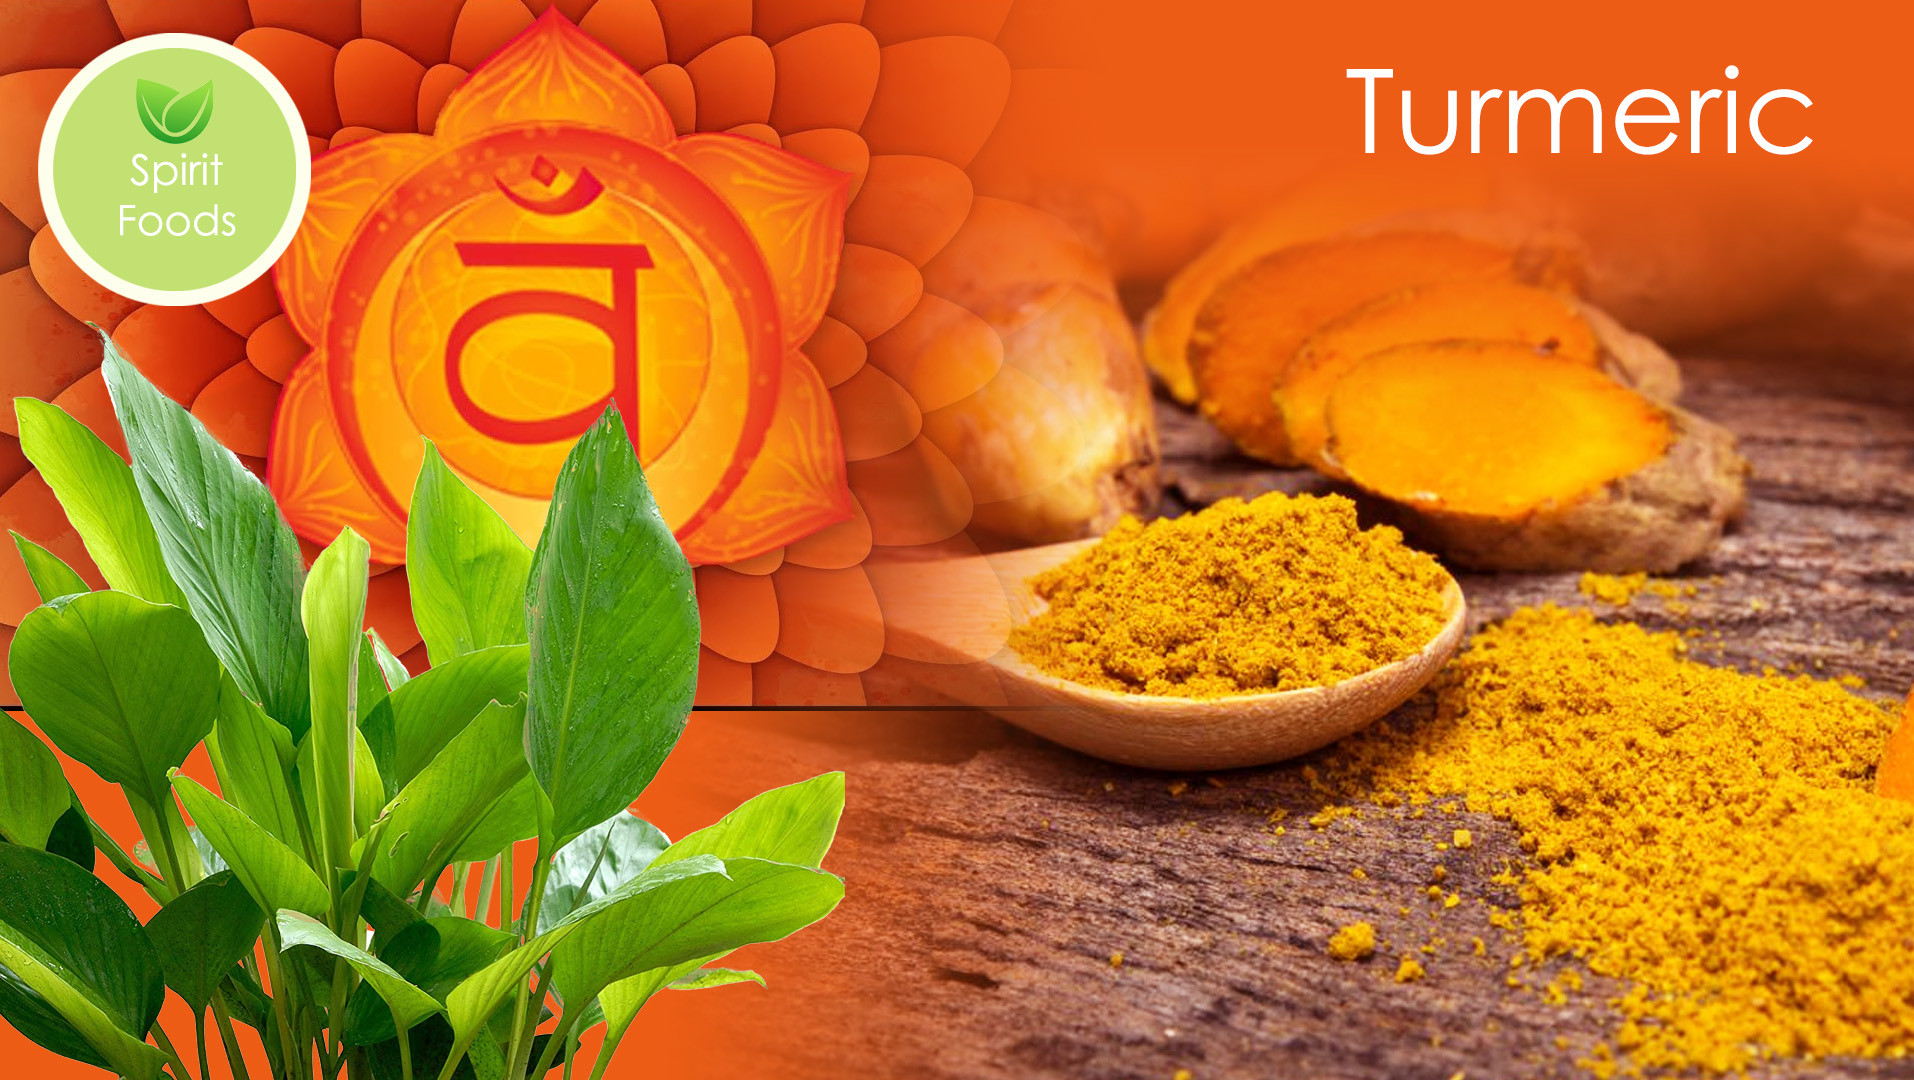 Spirit Food – Turmeric